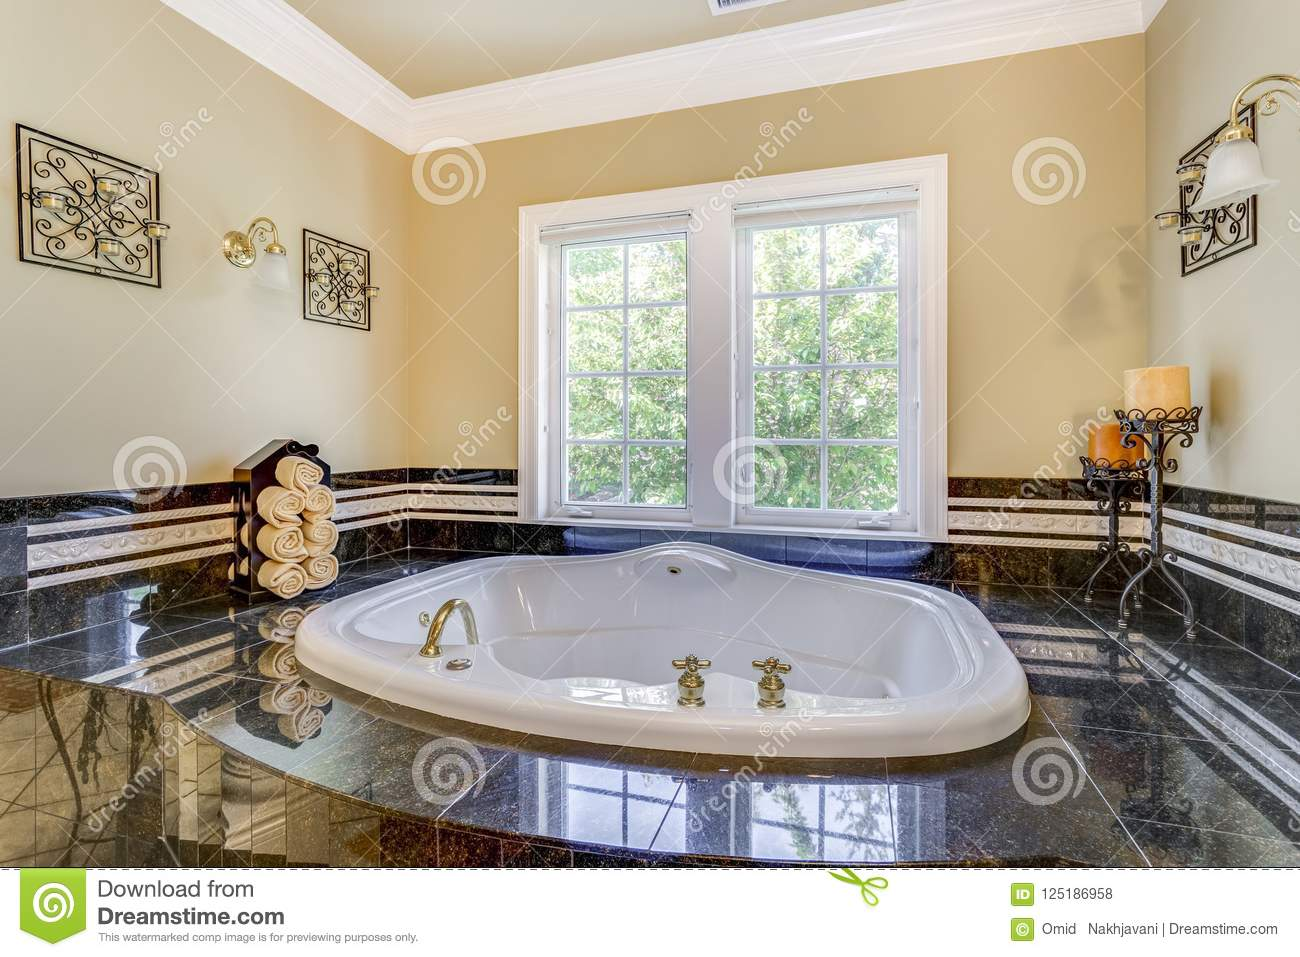 Elegant Master Bathroom With Luxury Bathtub Stock Photo - Image of ...